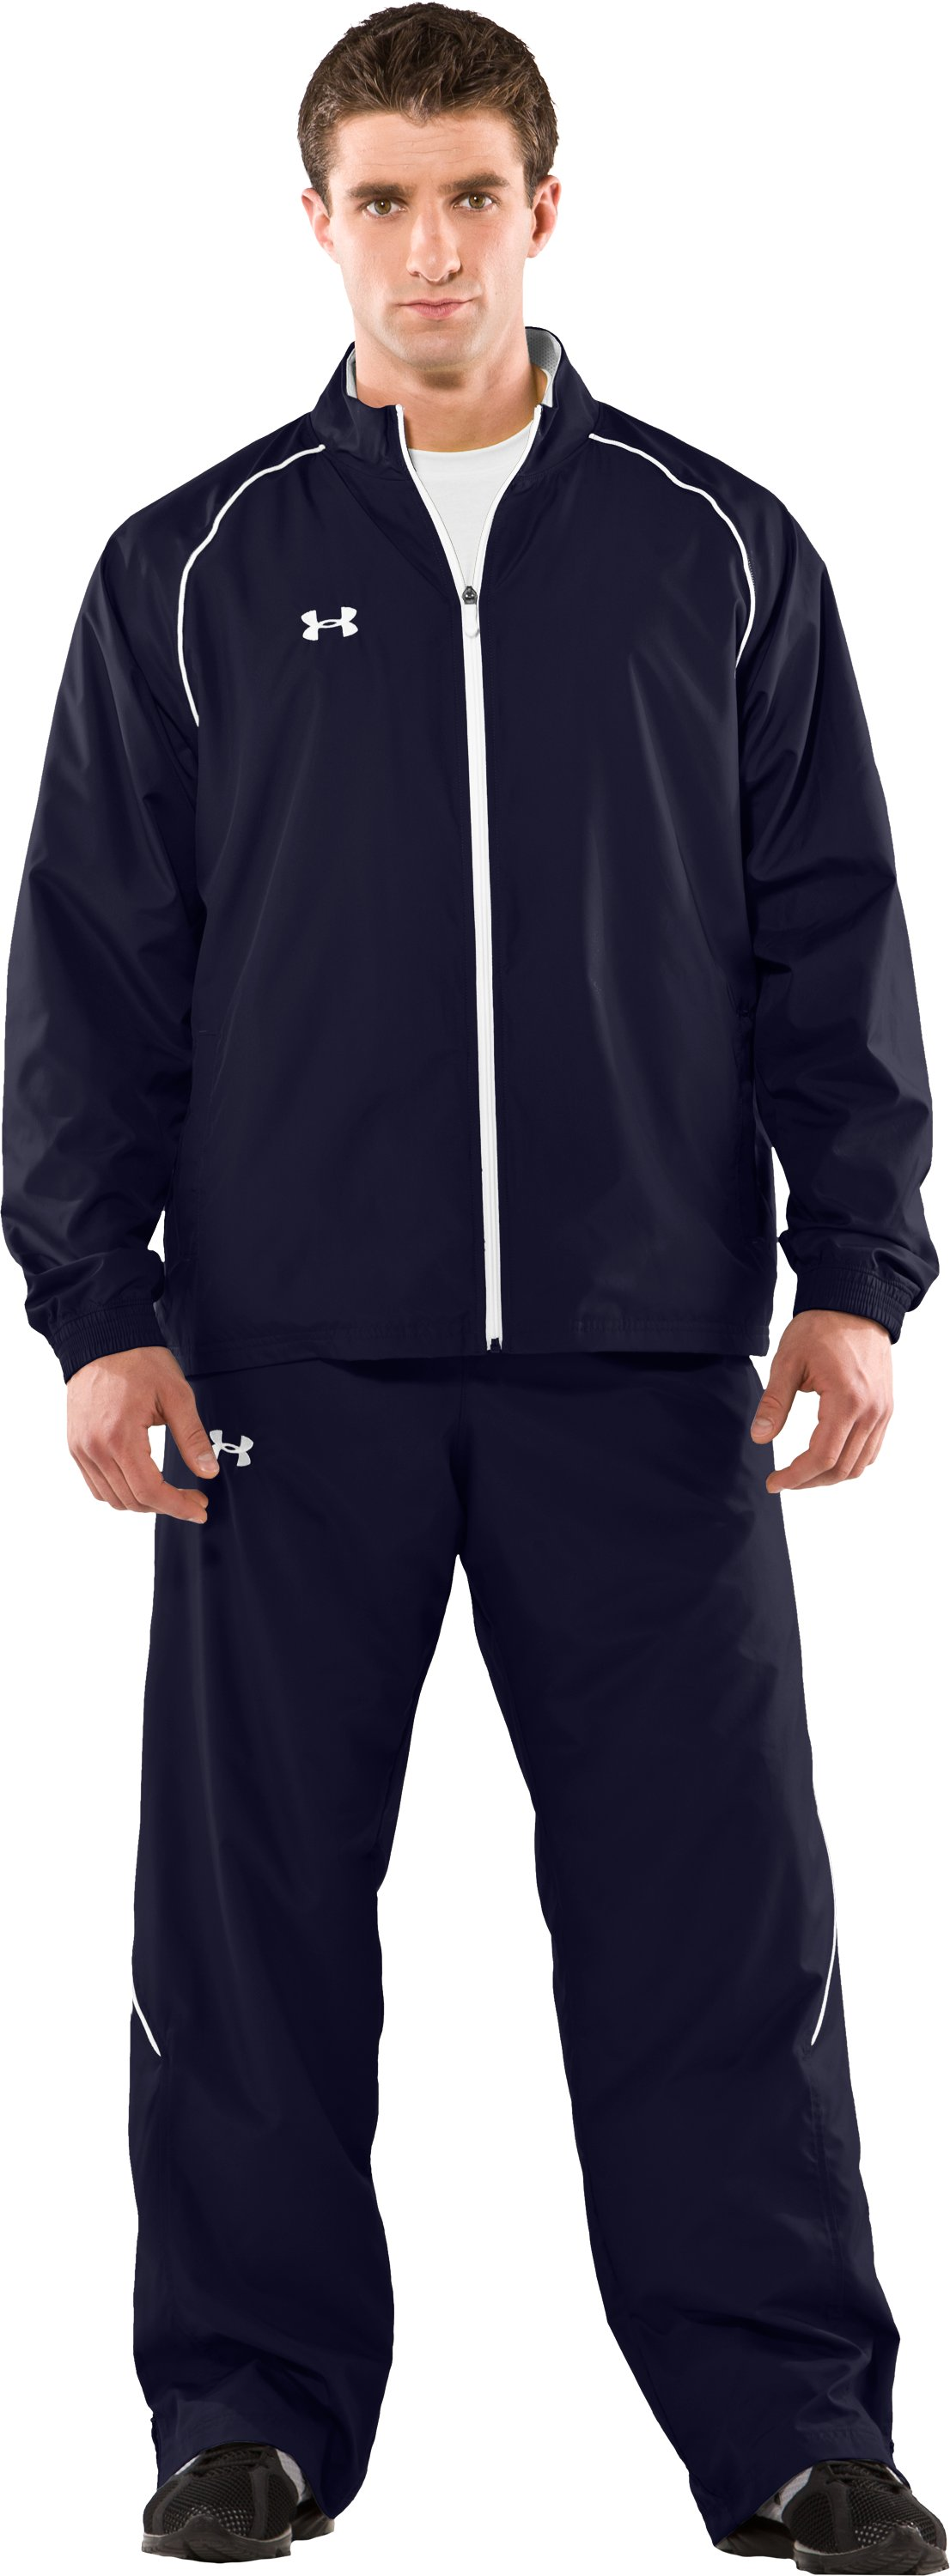 Men's UA Advance Woven Warm-Up Jacket, Midnight Navy, zoomed image